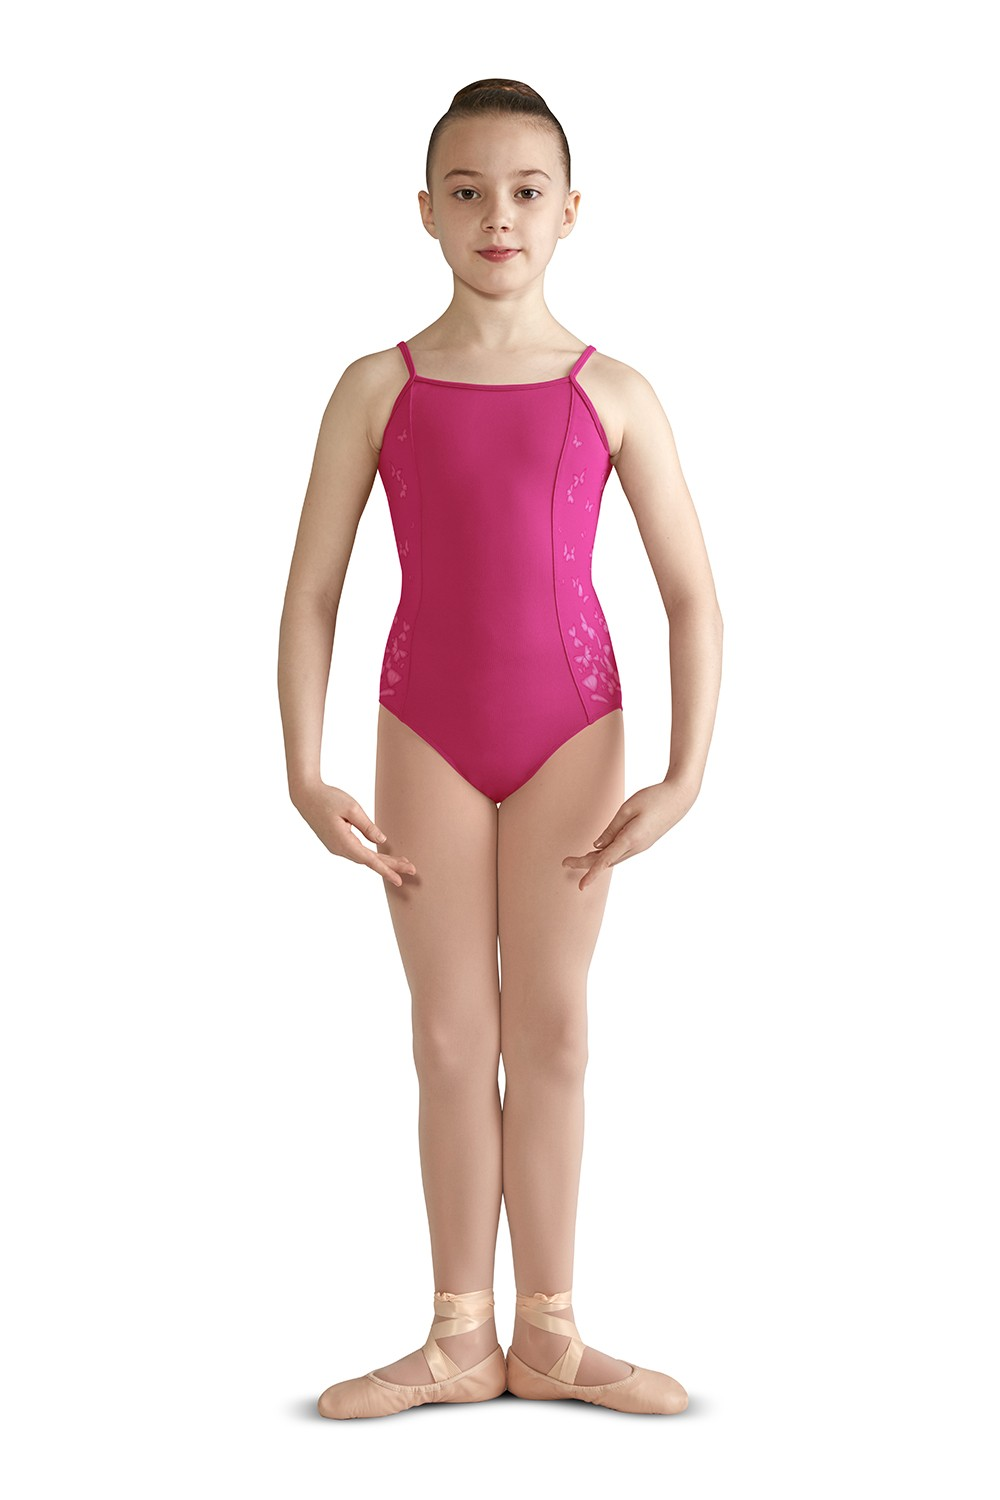 Agnes Children's Dance Leotards